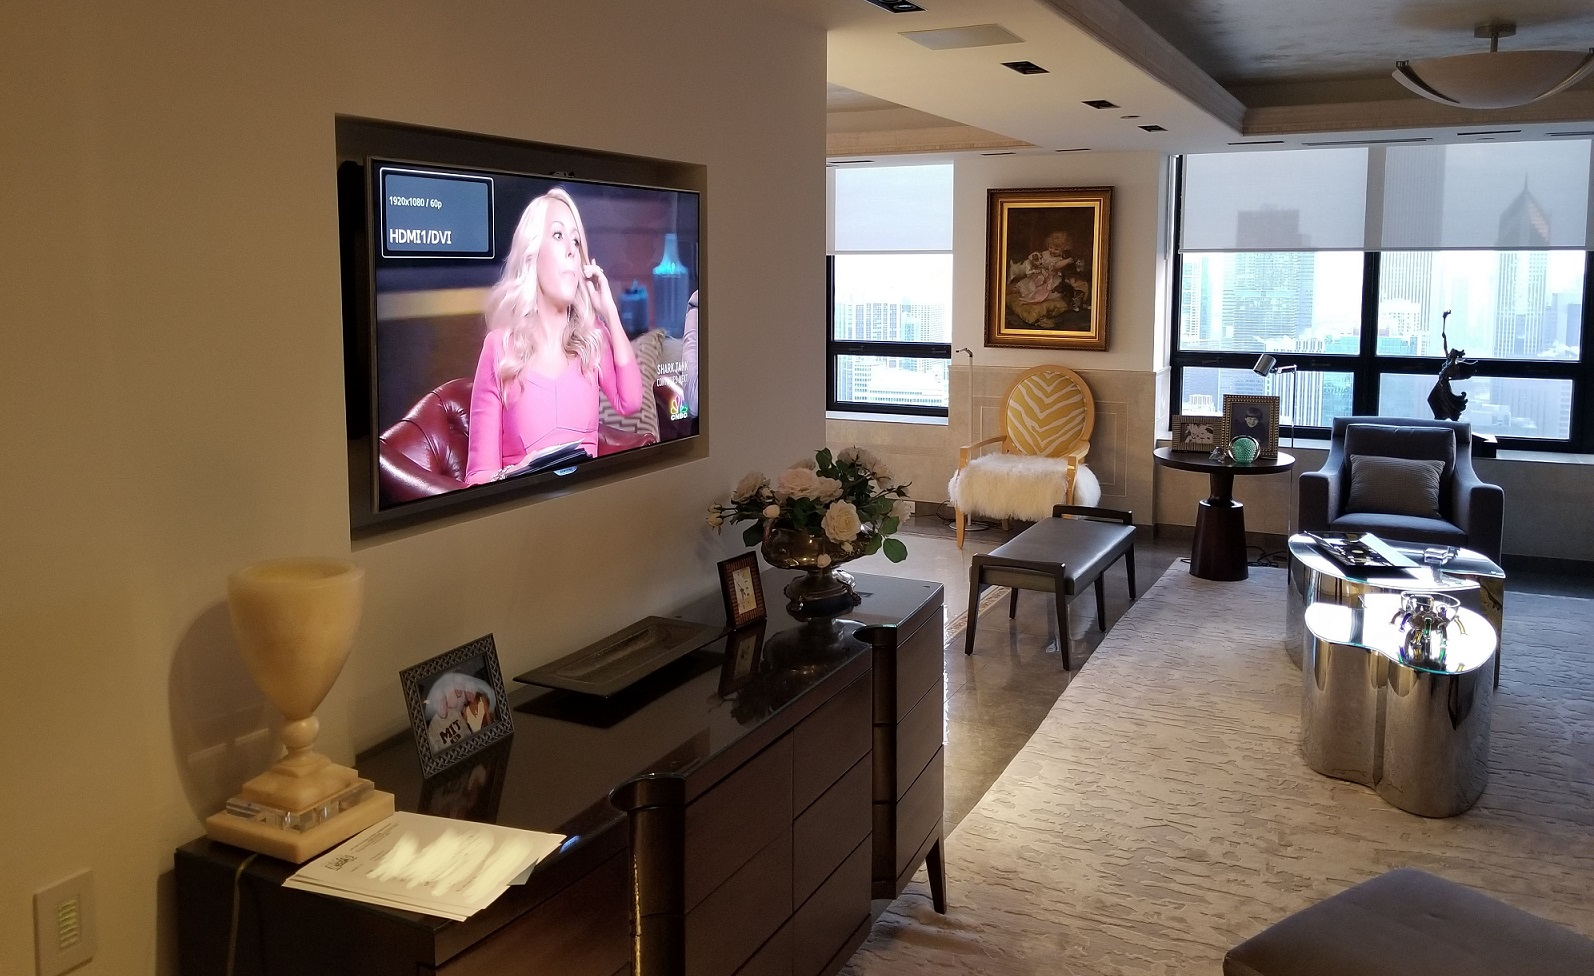 Video Over IP with Tivo and Elan used for Watertwoer Place condominium upgrade